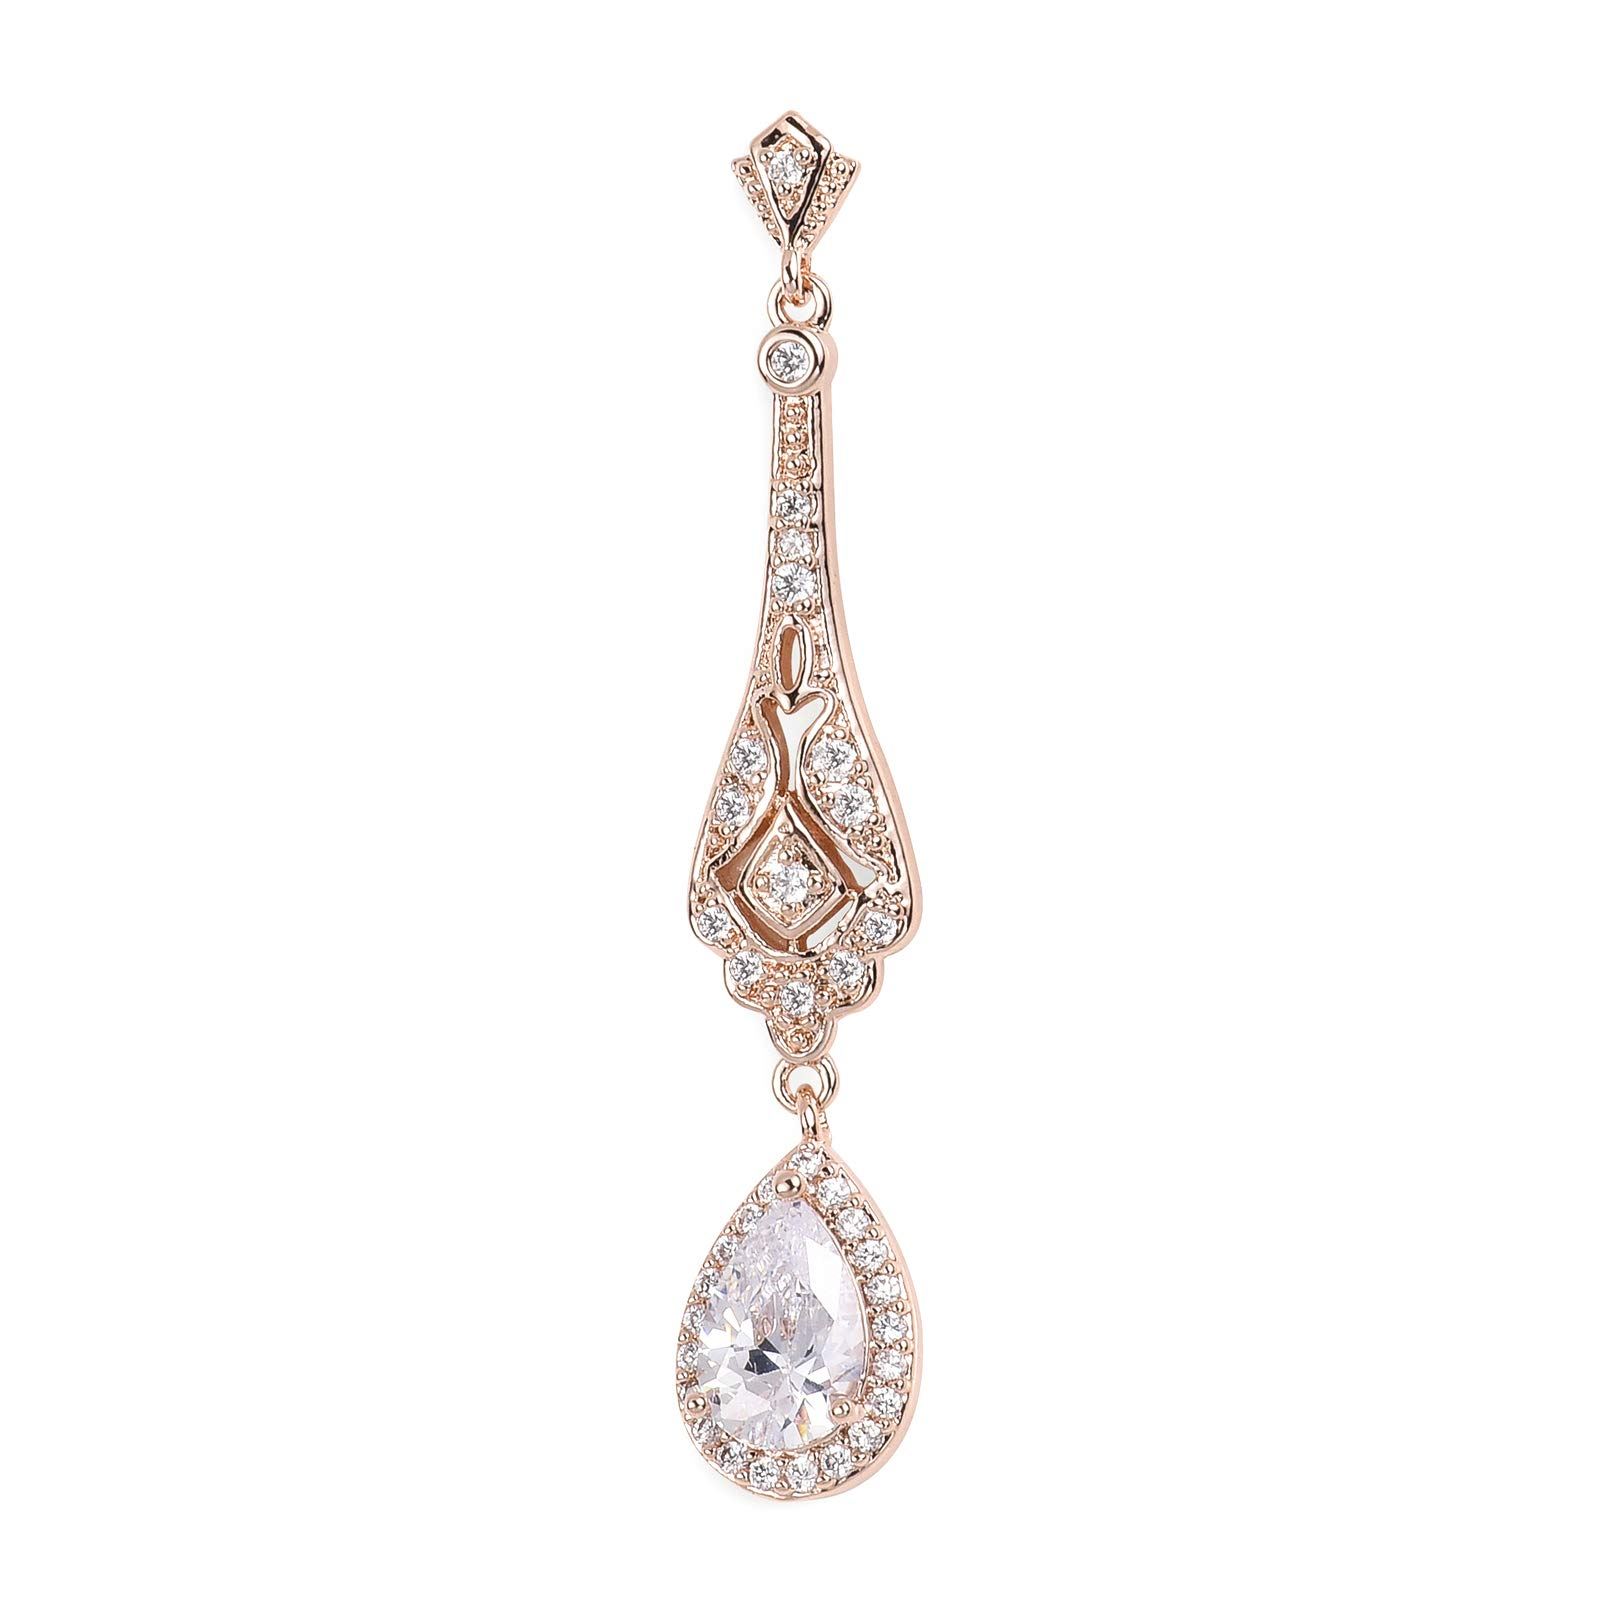 SWEETV Slender Teardrop Cubic Zirconia Vintage Dangle Earrings Rose Gold-Bridal Wedding Style Jewelry for Women Brides,Bridesmaids by SWEETV (Image #3)